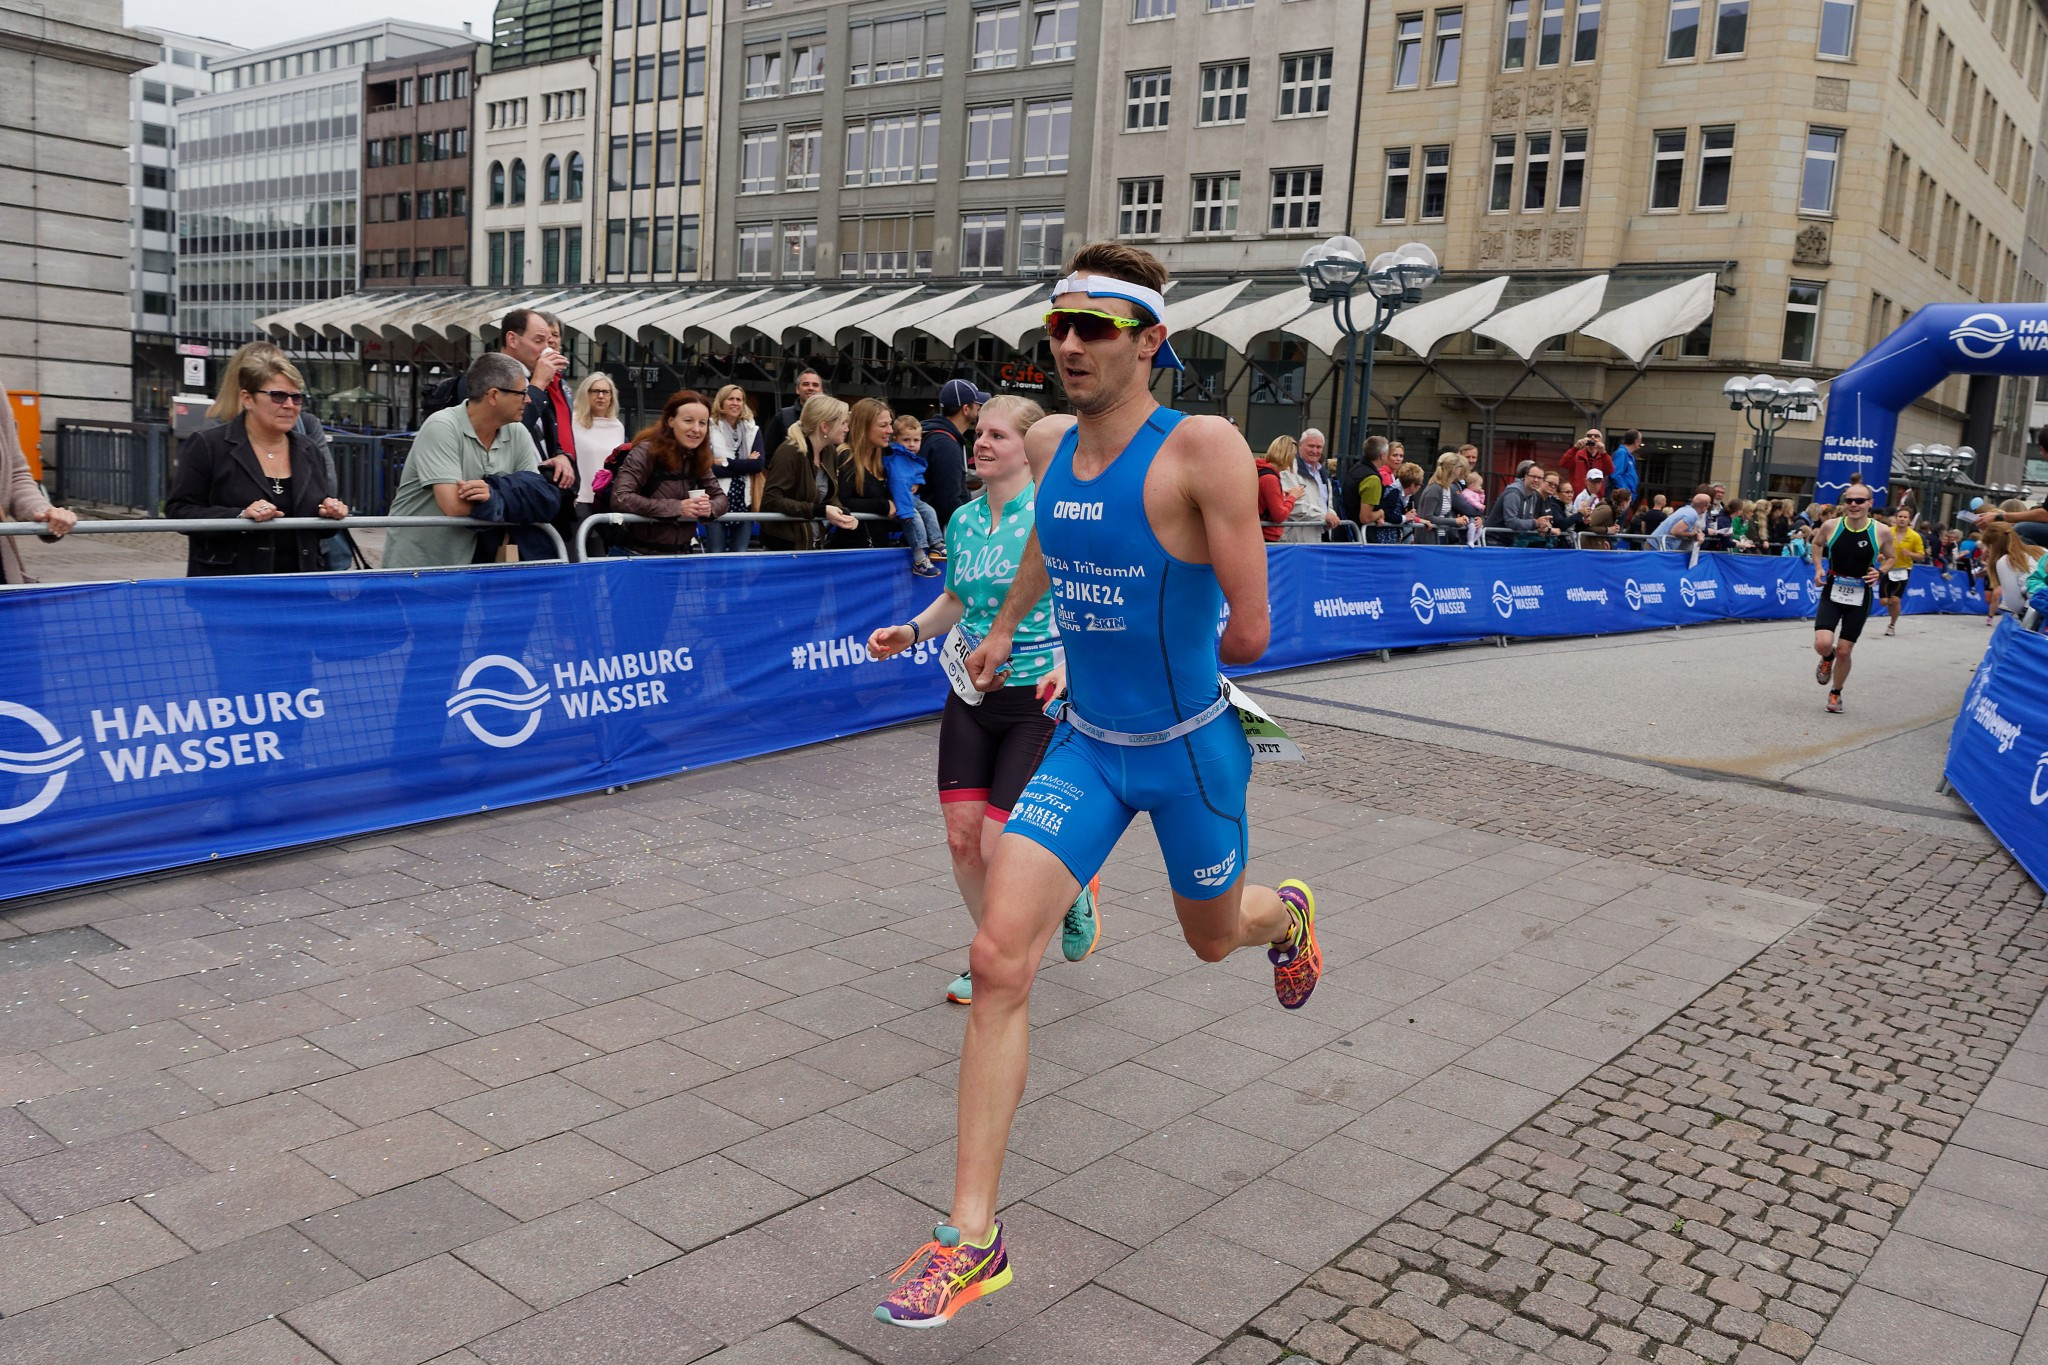 ITU open bid process for 2018 World Paratriathlon Series and World Cup events